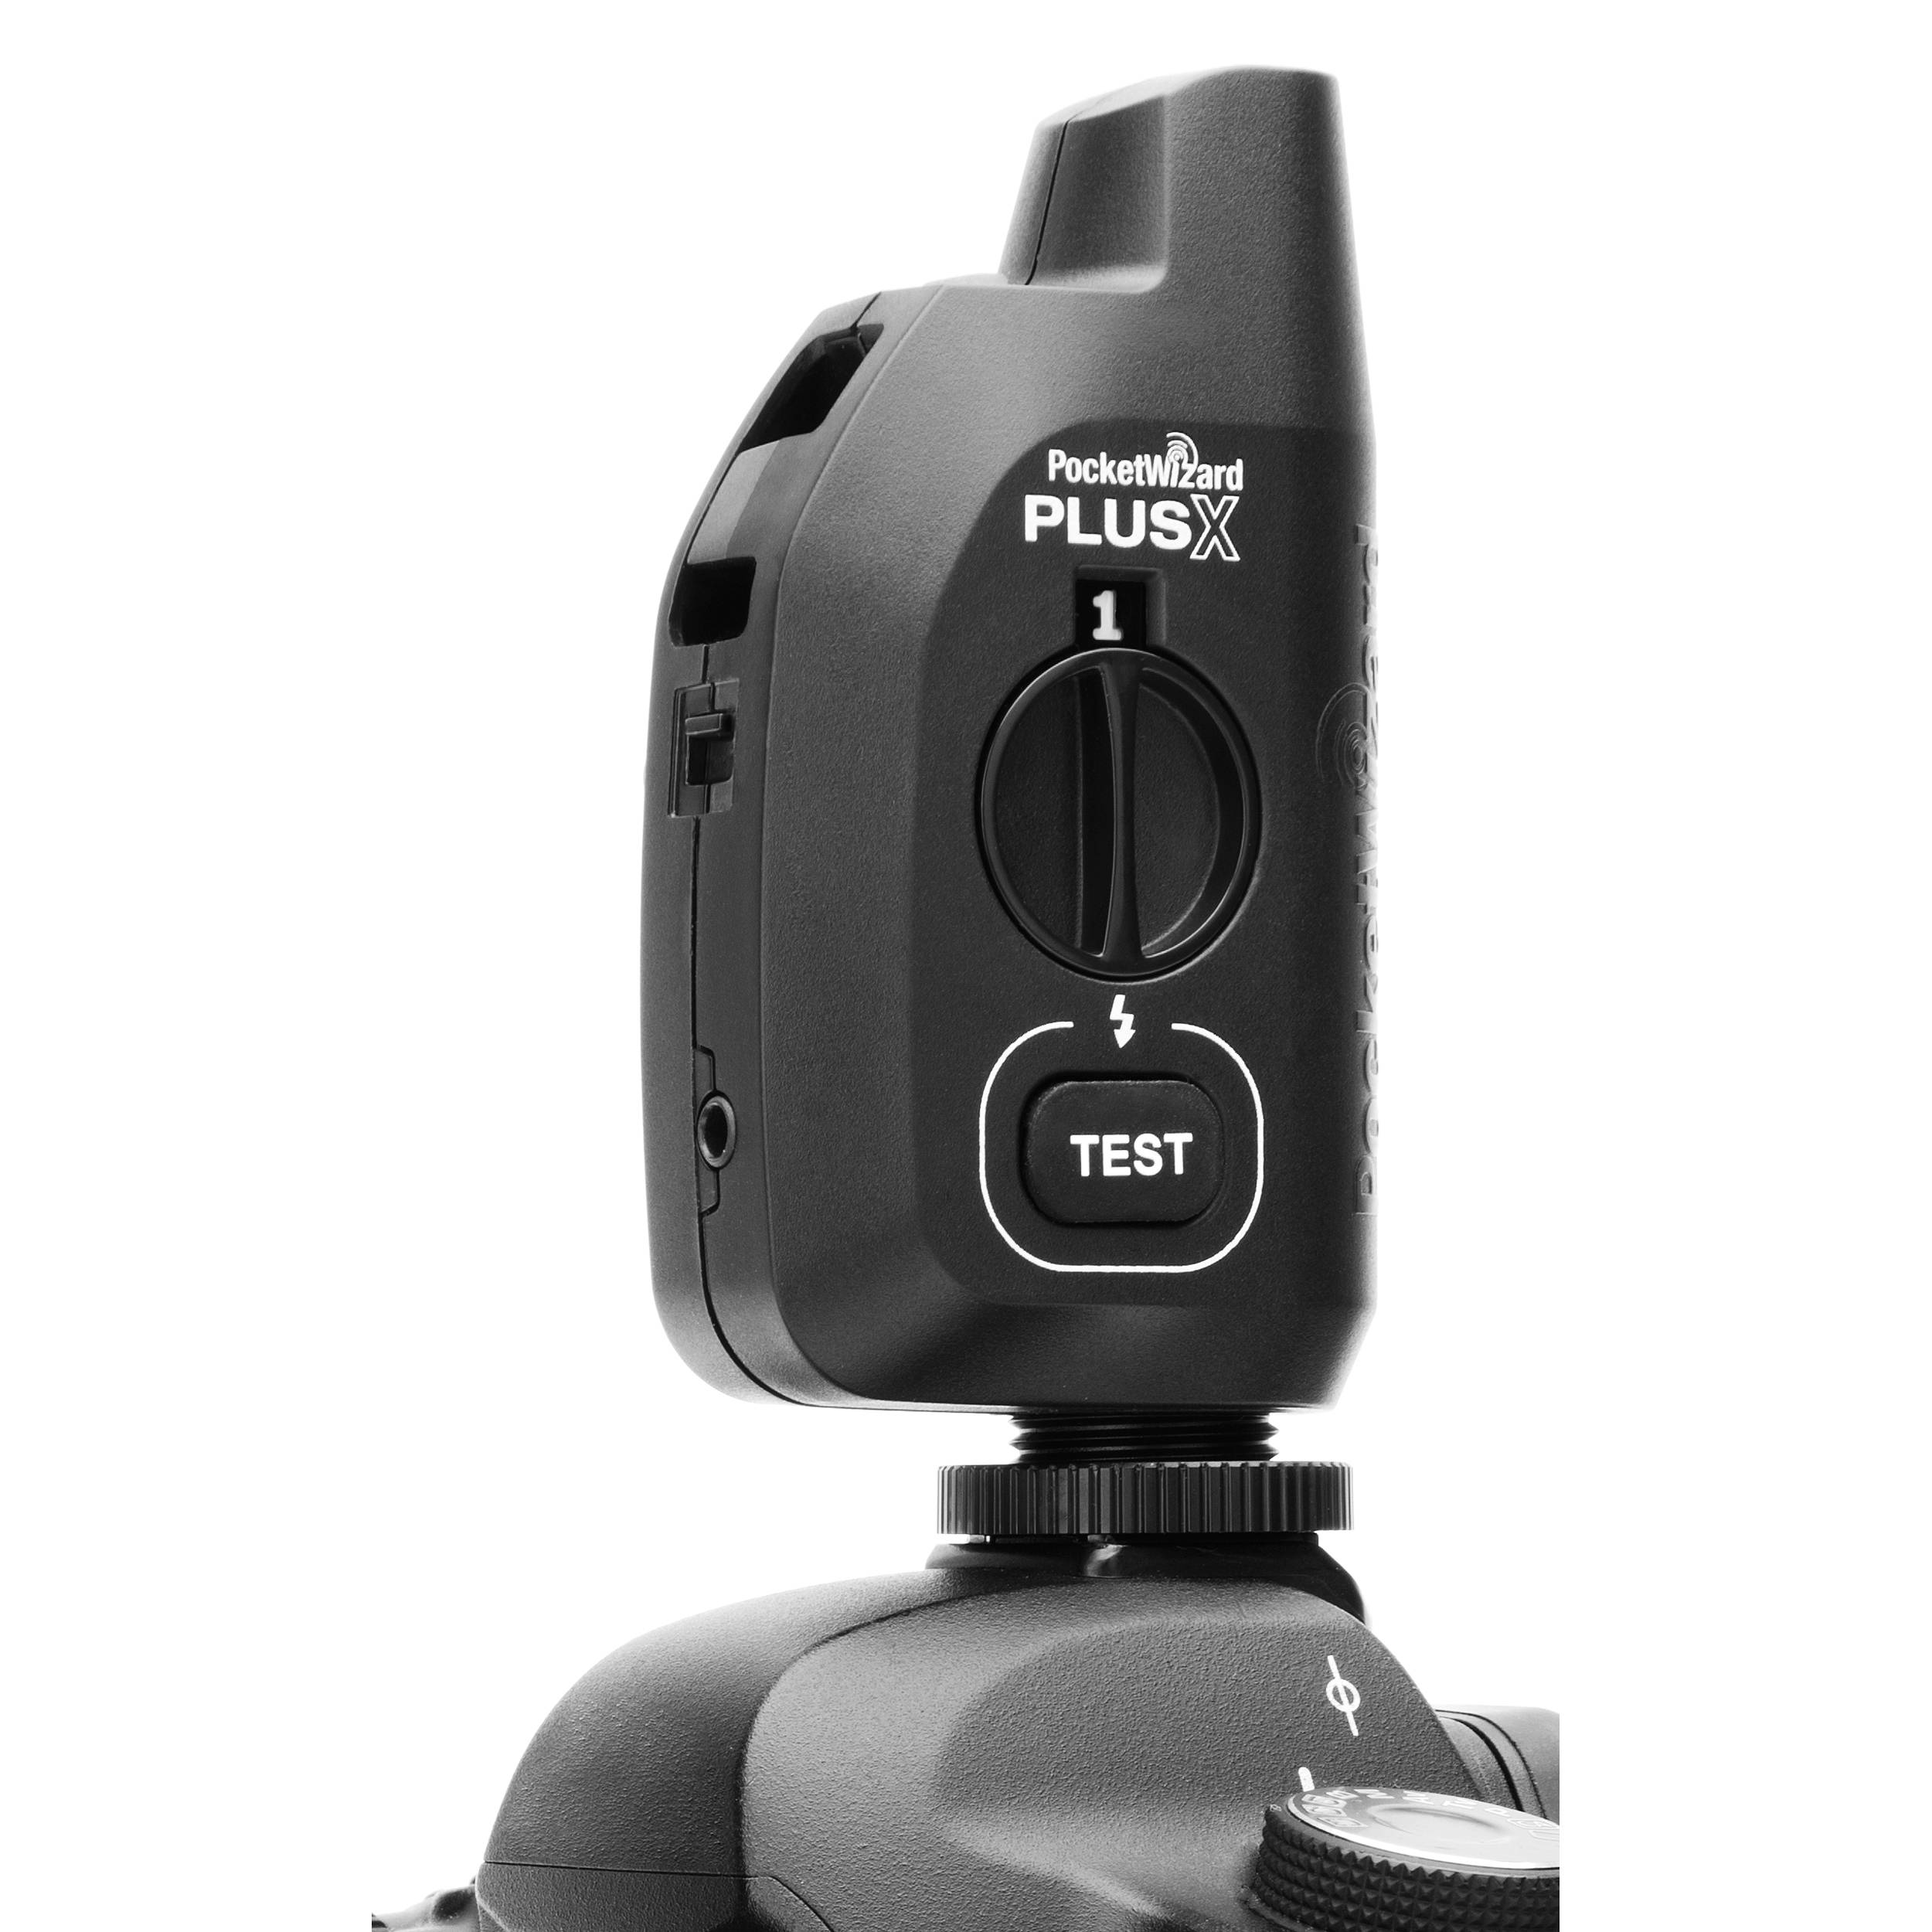 PocketWizard® Announces Easy-to-Use Plus®X Transceiver for Wireless Flash and Camera Triggering 3